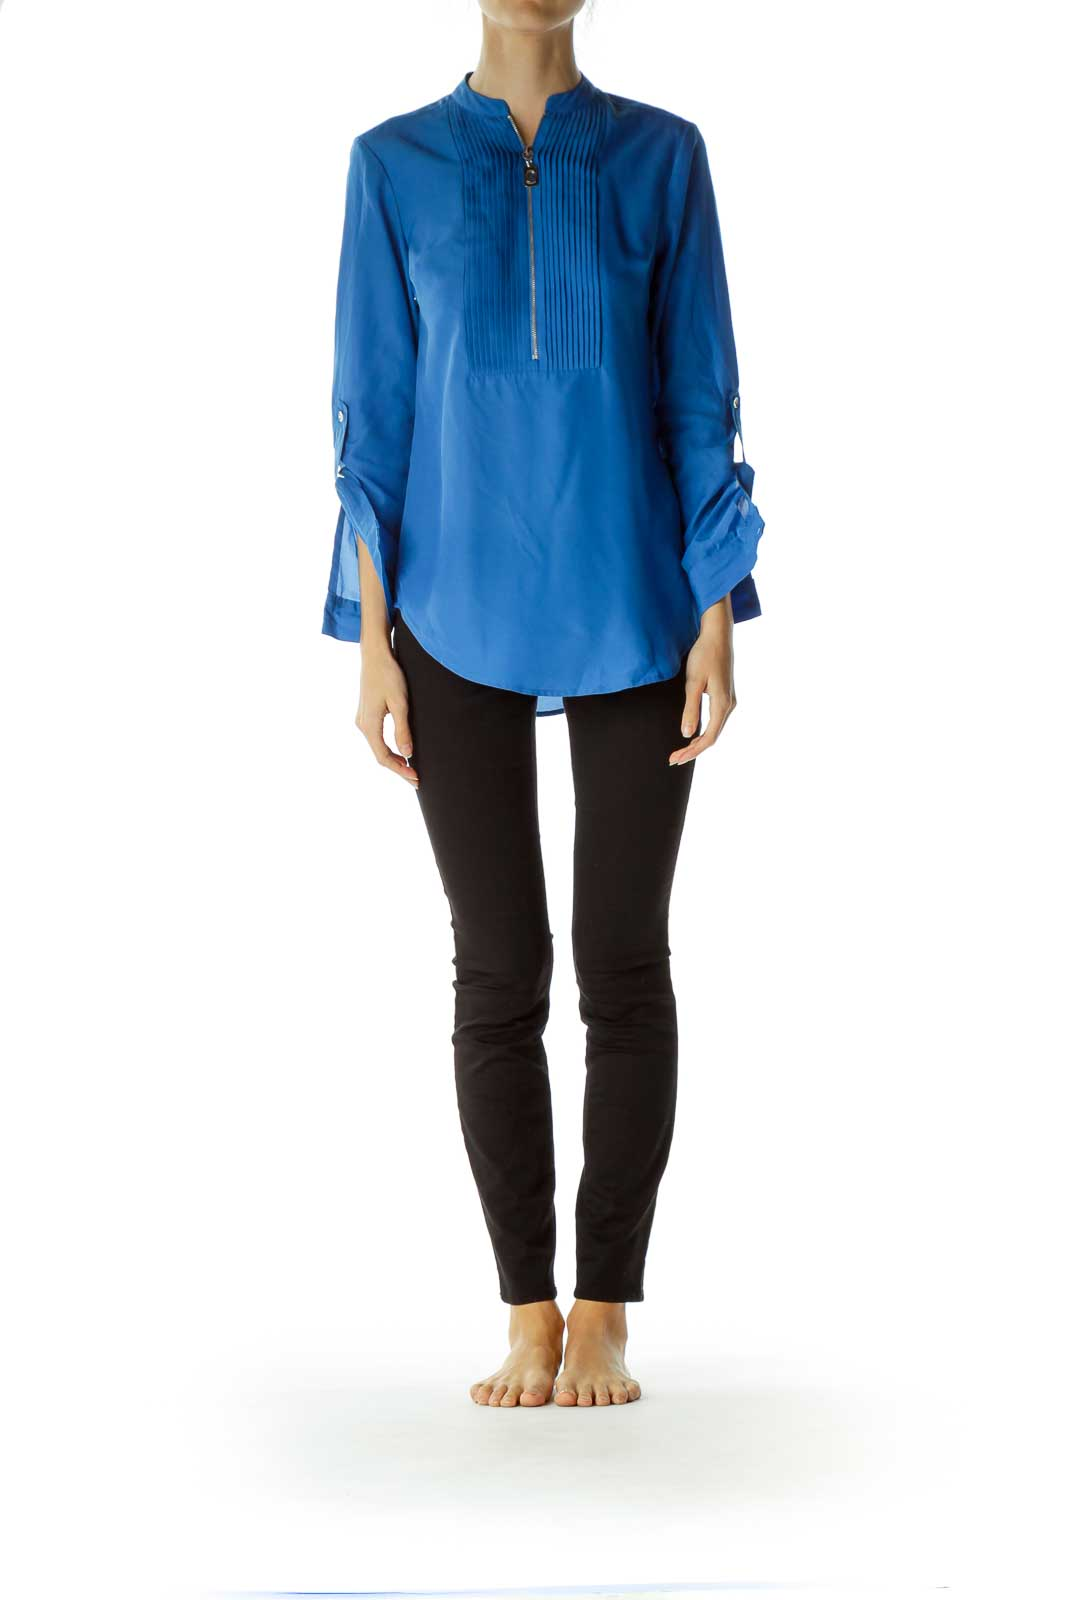 Blue Zippered Blouse